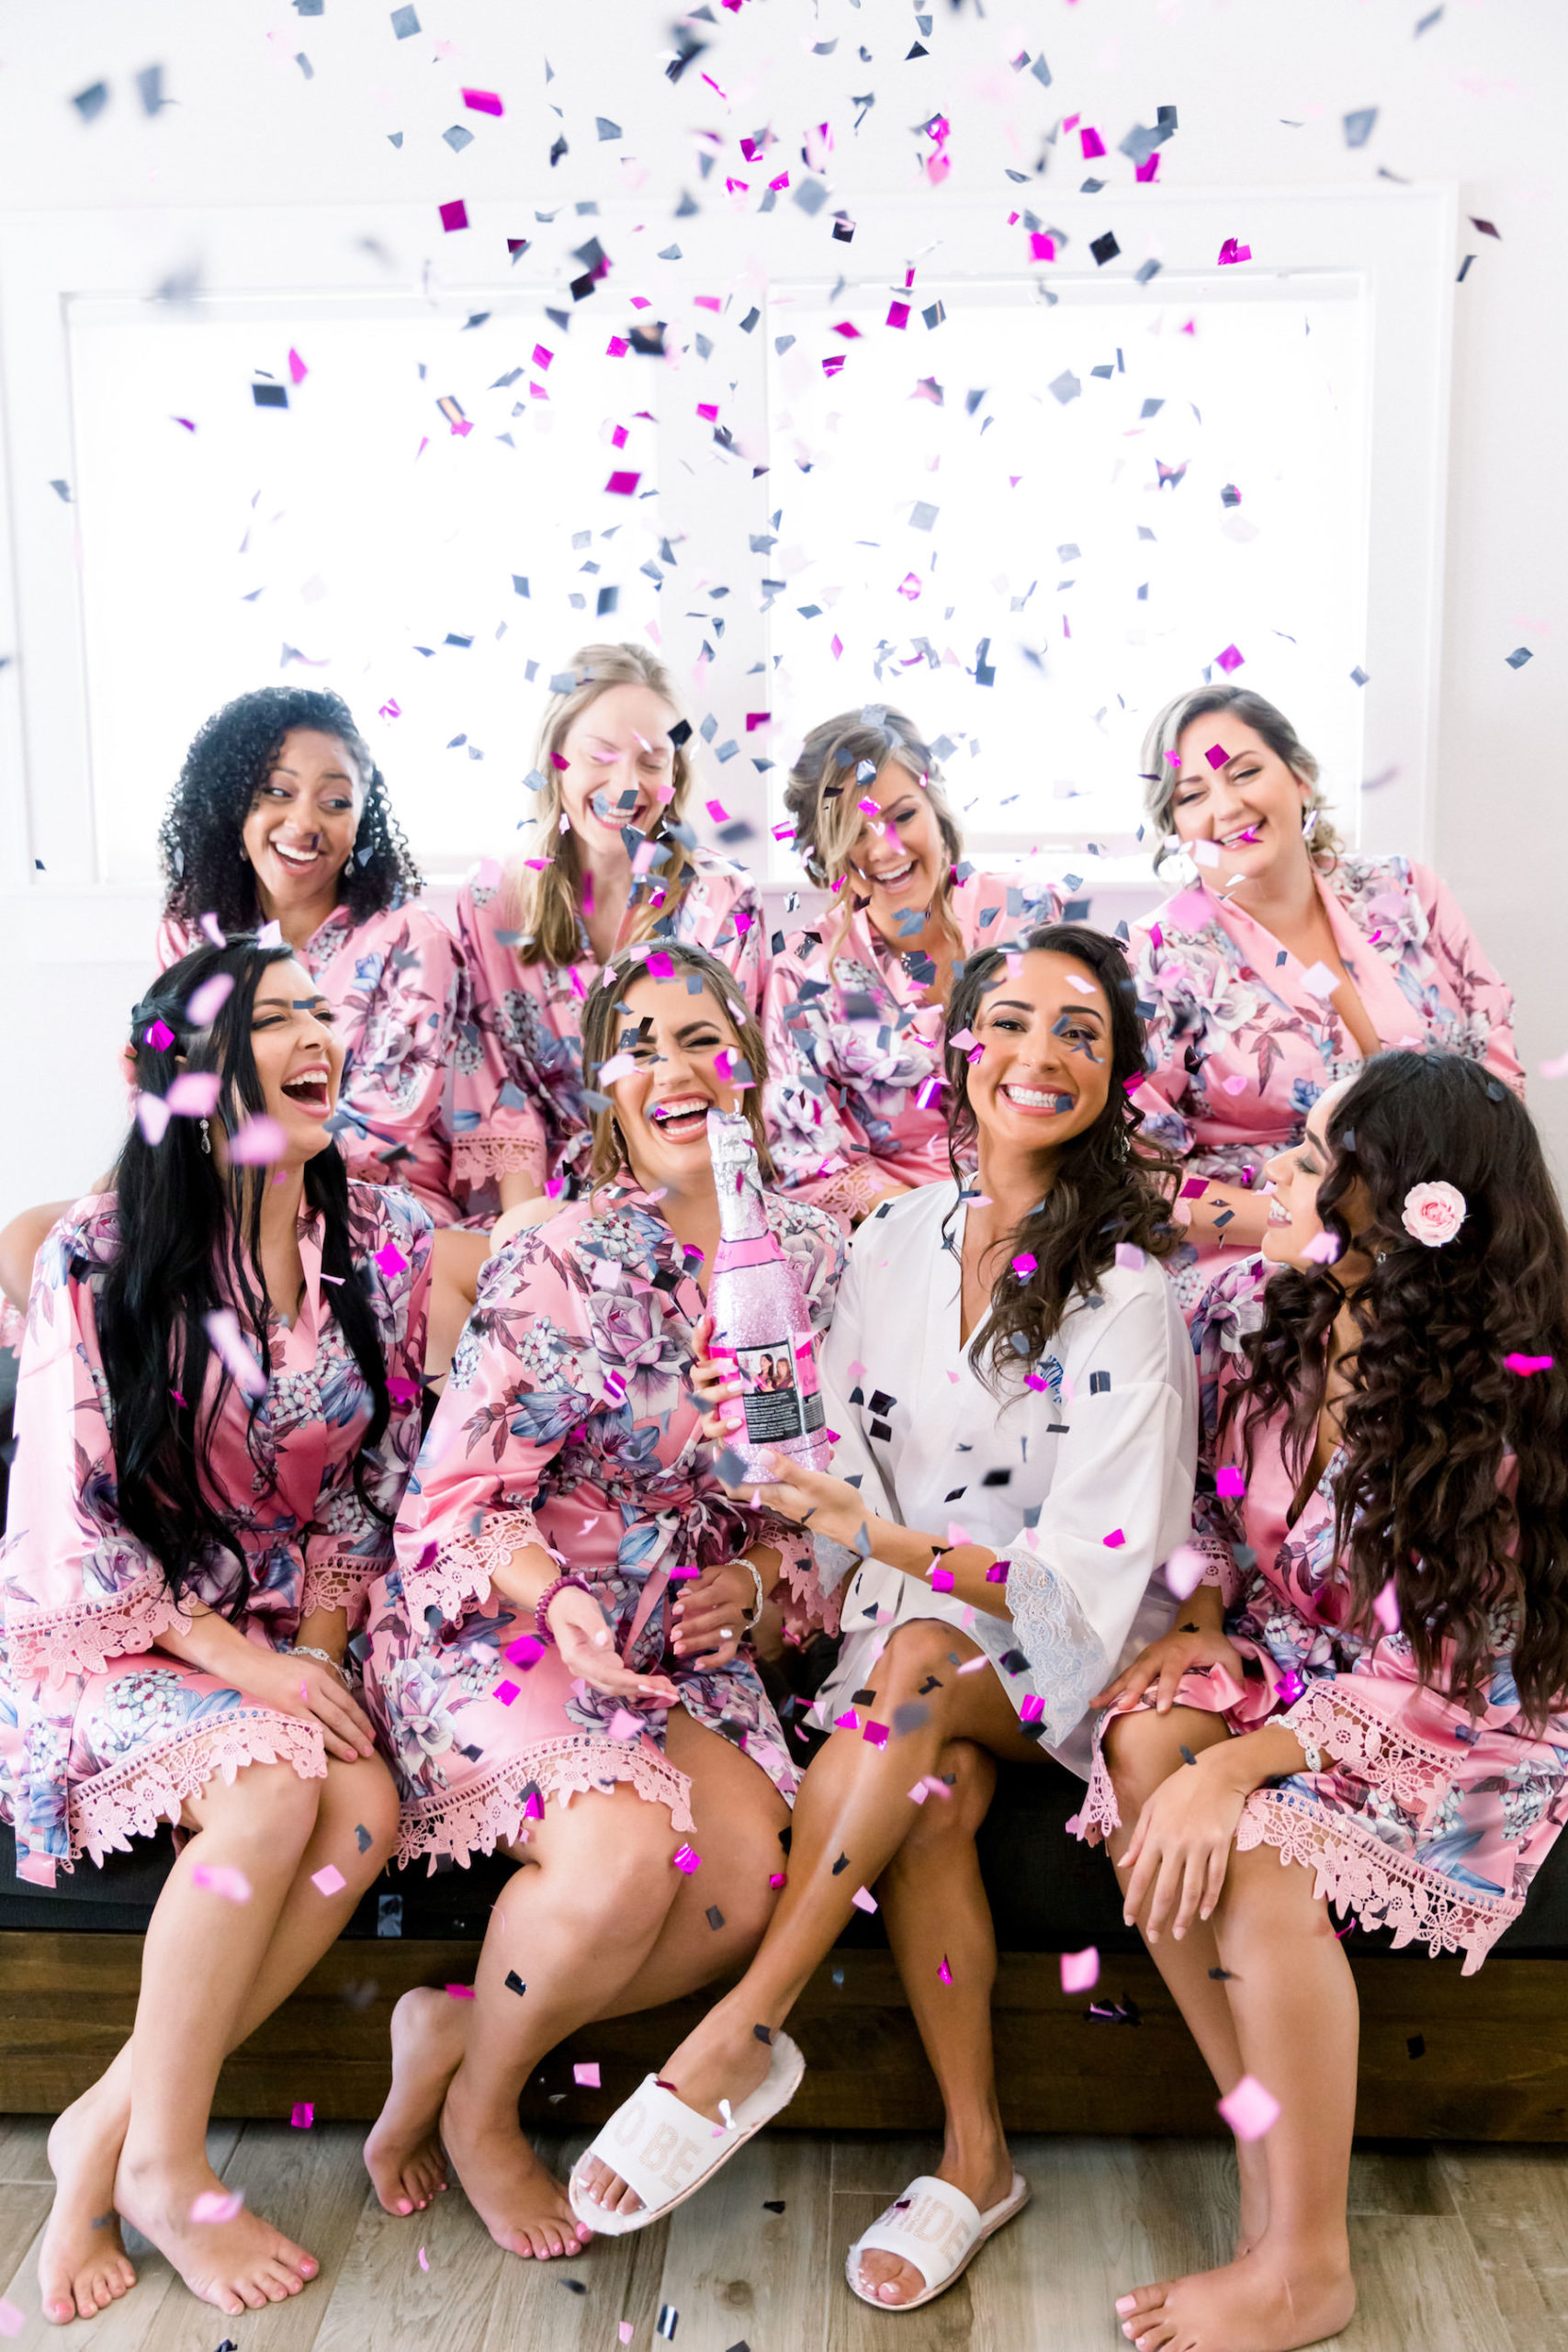 Fun Pink and Gray Confetti Portrait with Bride and Bridesmaids in Matching Pink Floral Robes and Champagne | Tampa Bay Wedding Photographer Shauna and Jordon Photography